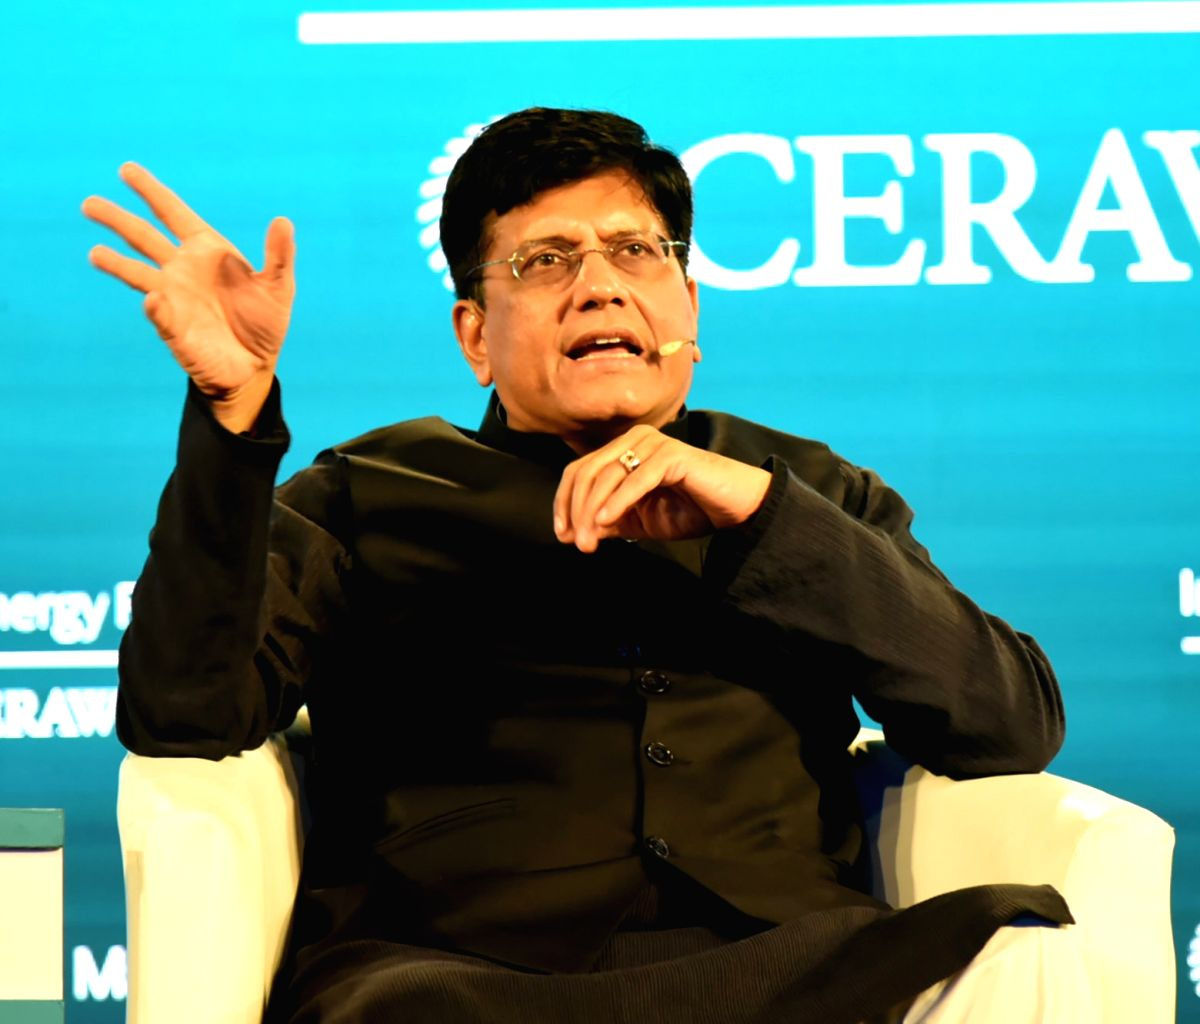 New Delhi: Union Commerce and Industry Minister Piyush Goyal addresses at the third India Energy Forum, in New Delhi on Oct 15, 2019. (Photo: IANS/PIB)